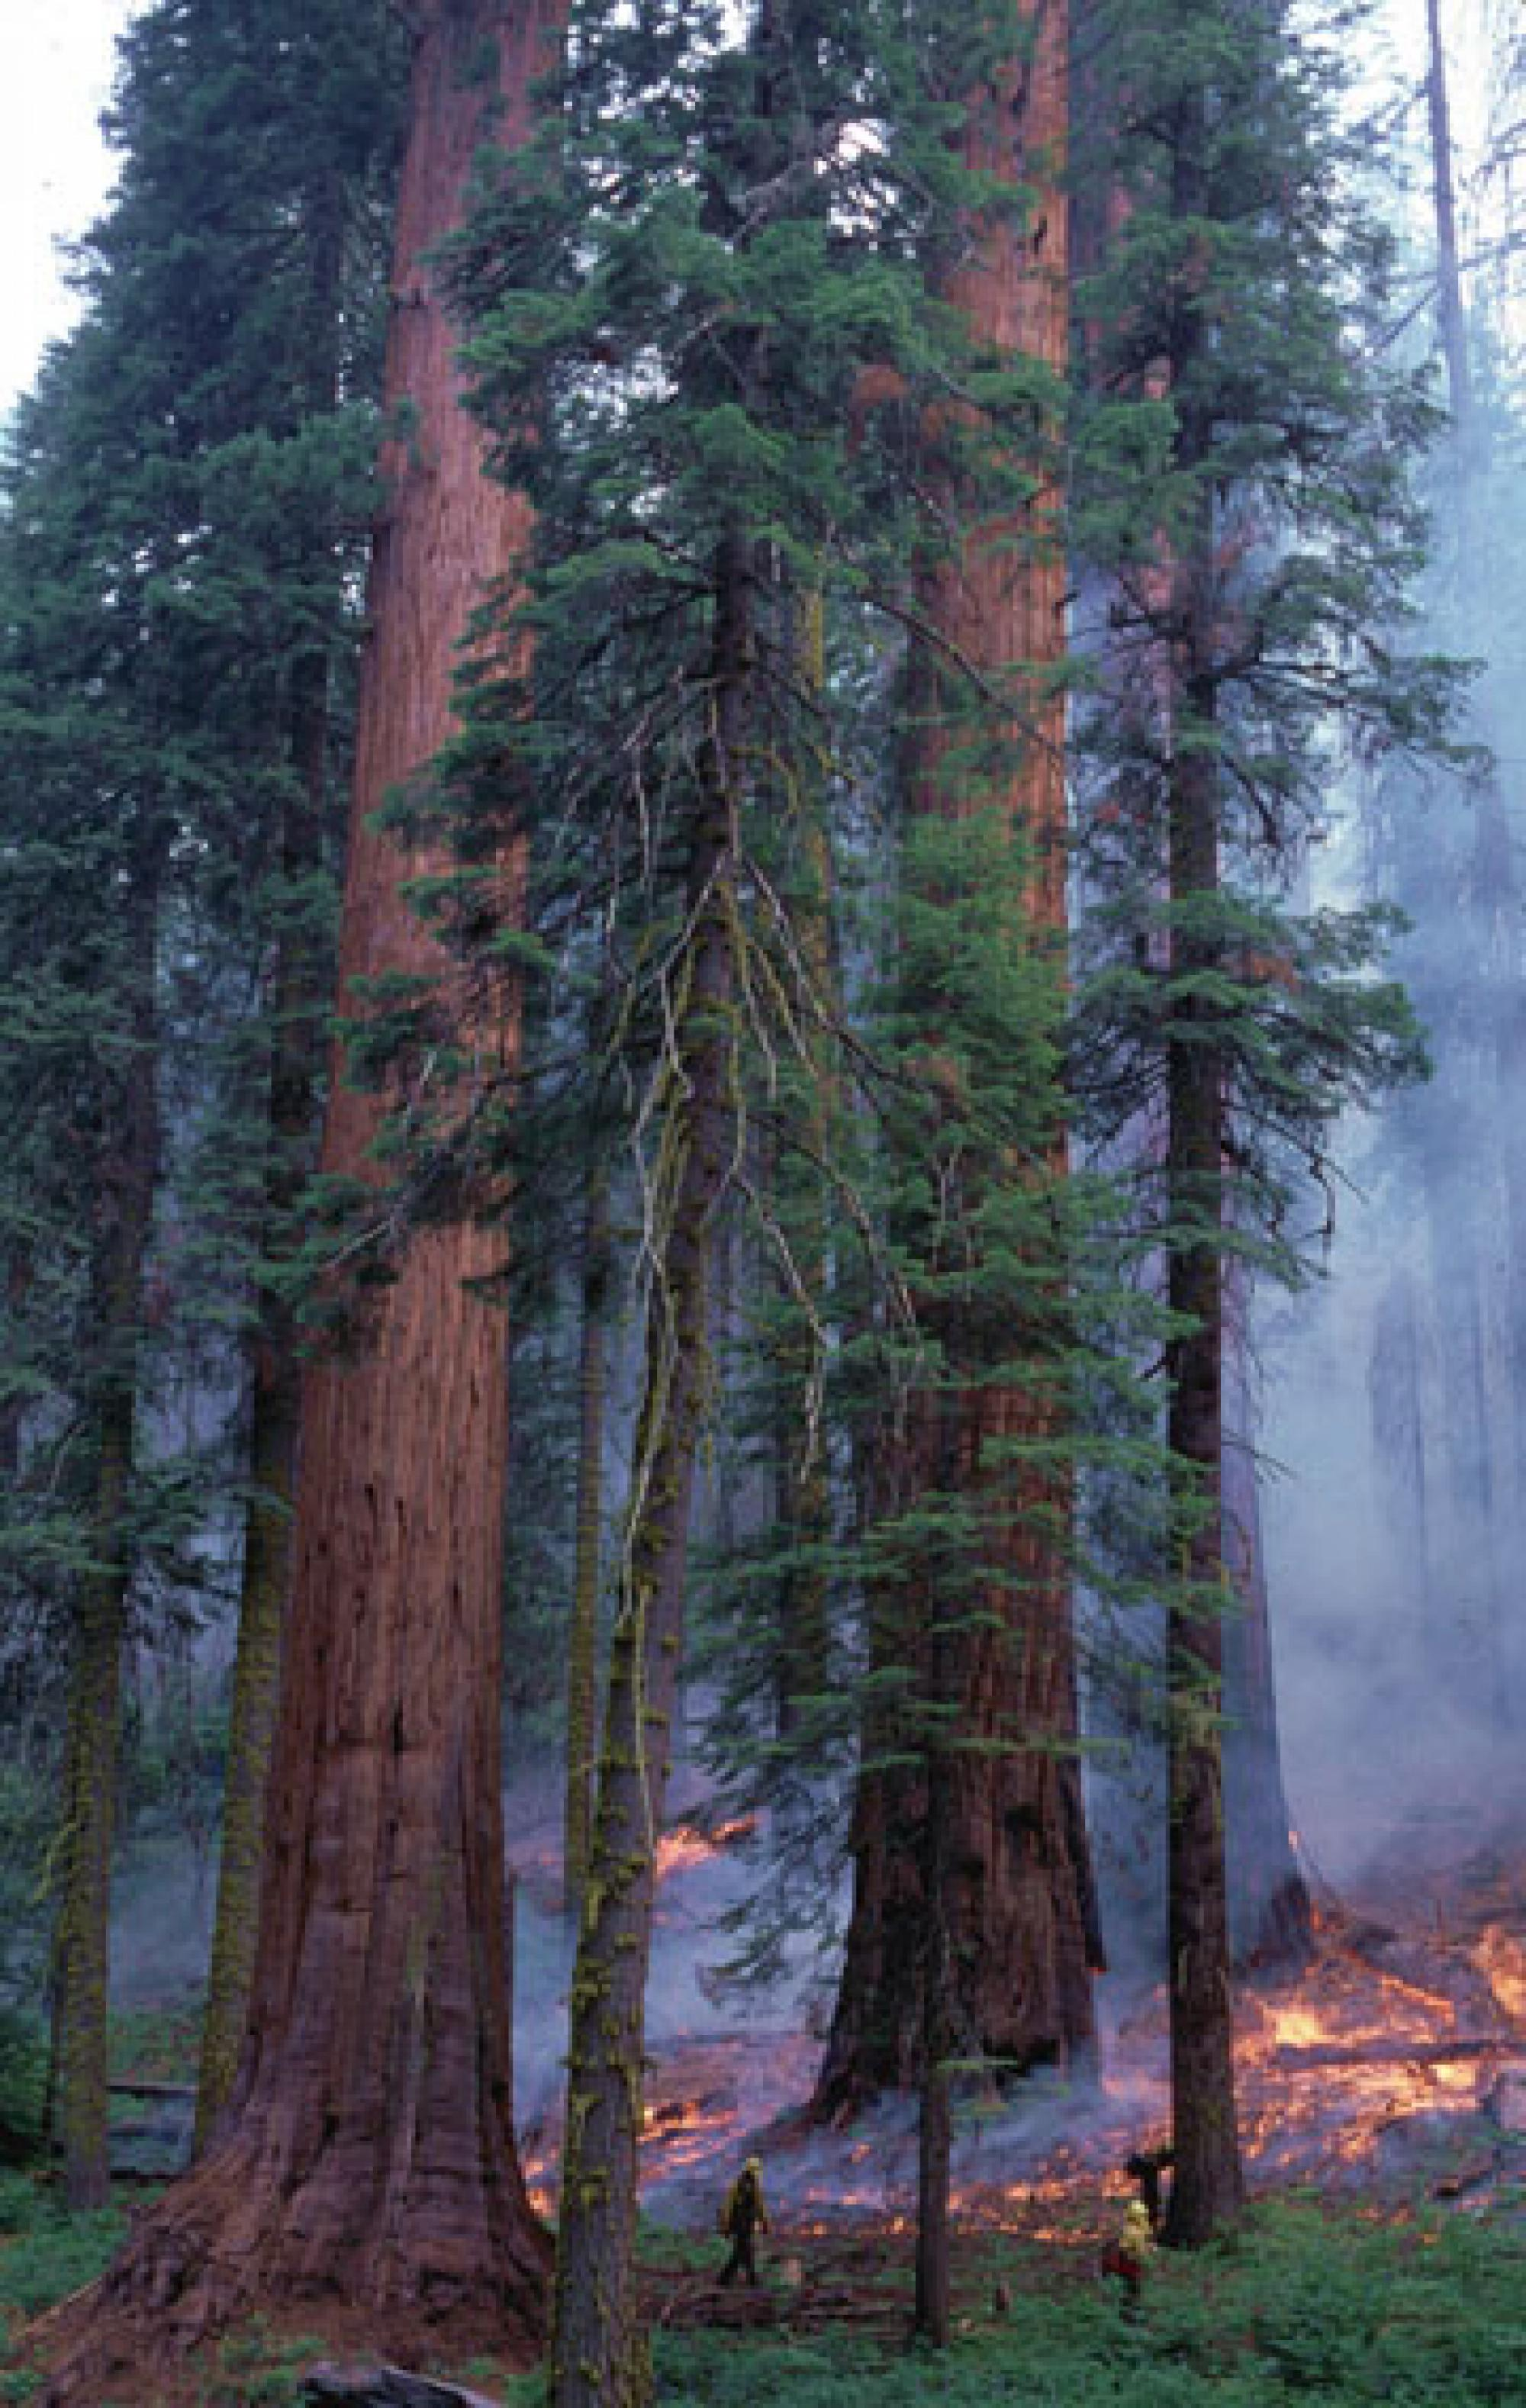 A prescribed burn conducted in July 2001 in the Giant Forest of Sequoia National Park.